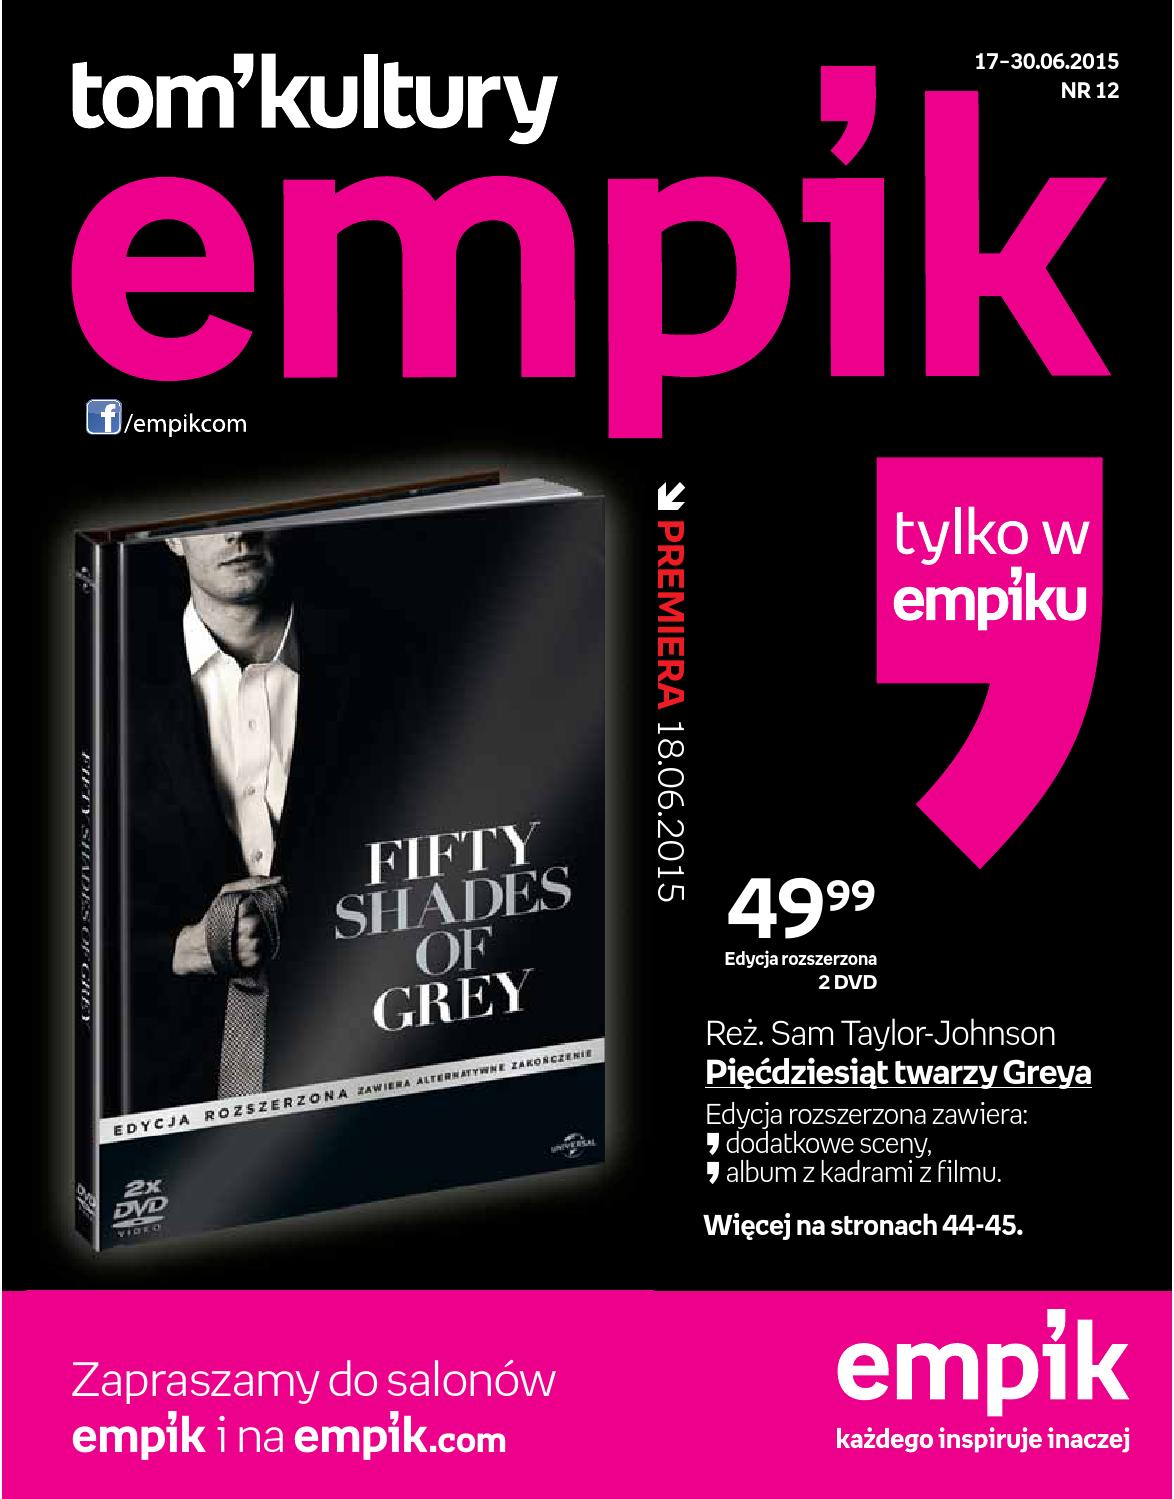 Tom Kultury Nr 12 2015 By Empik Issuu